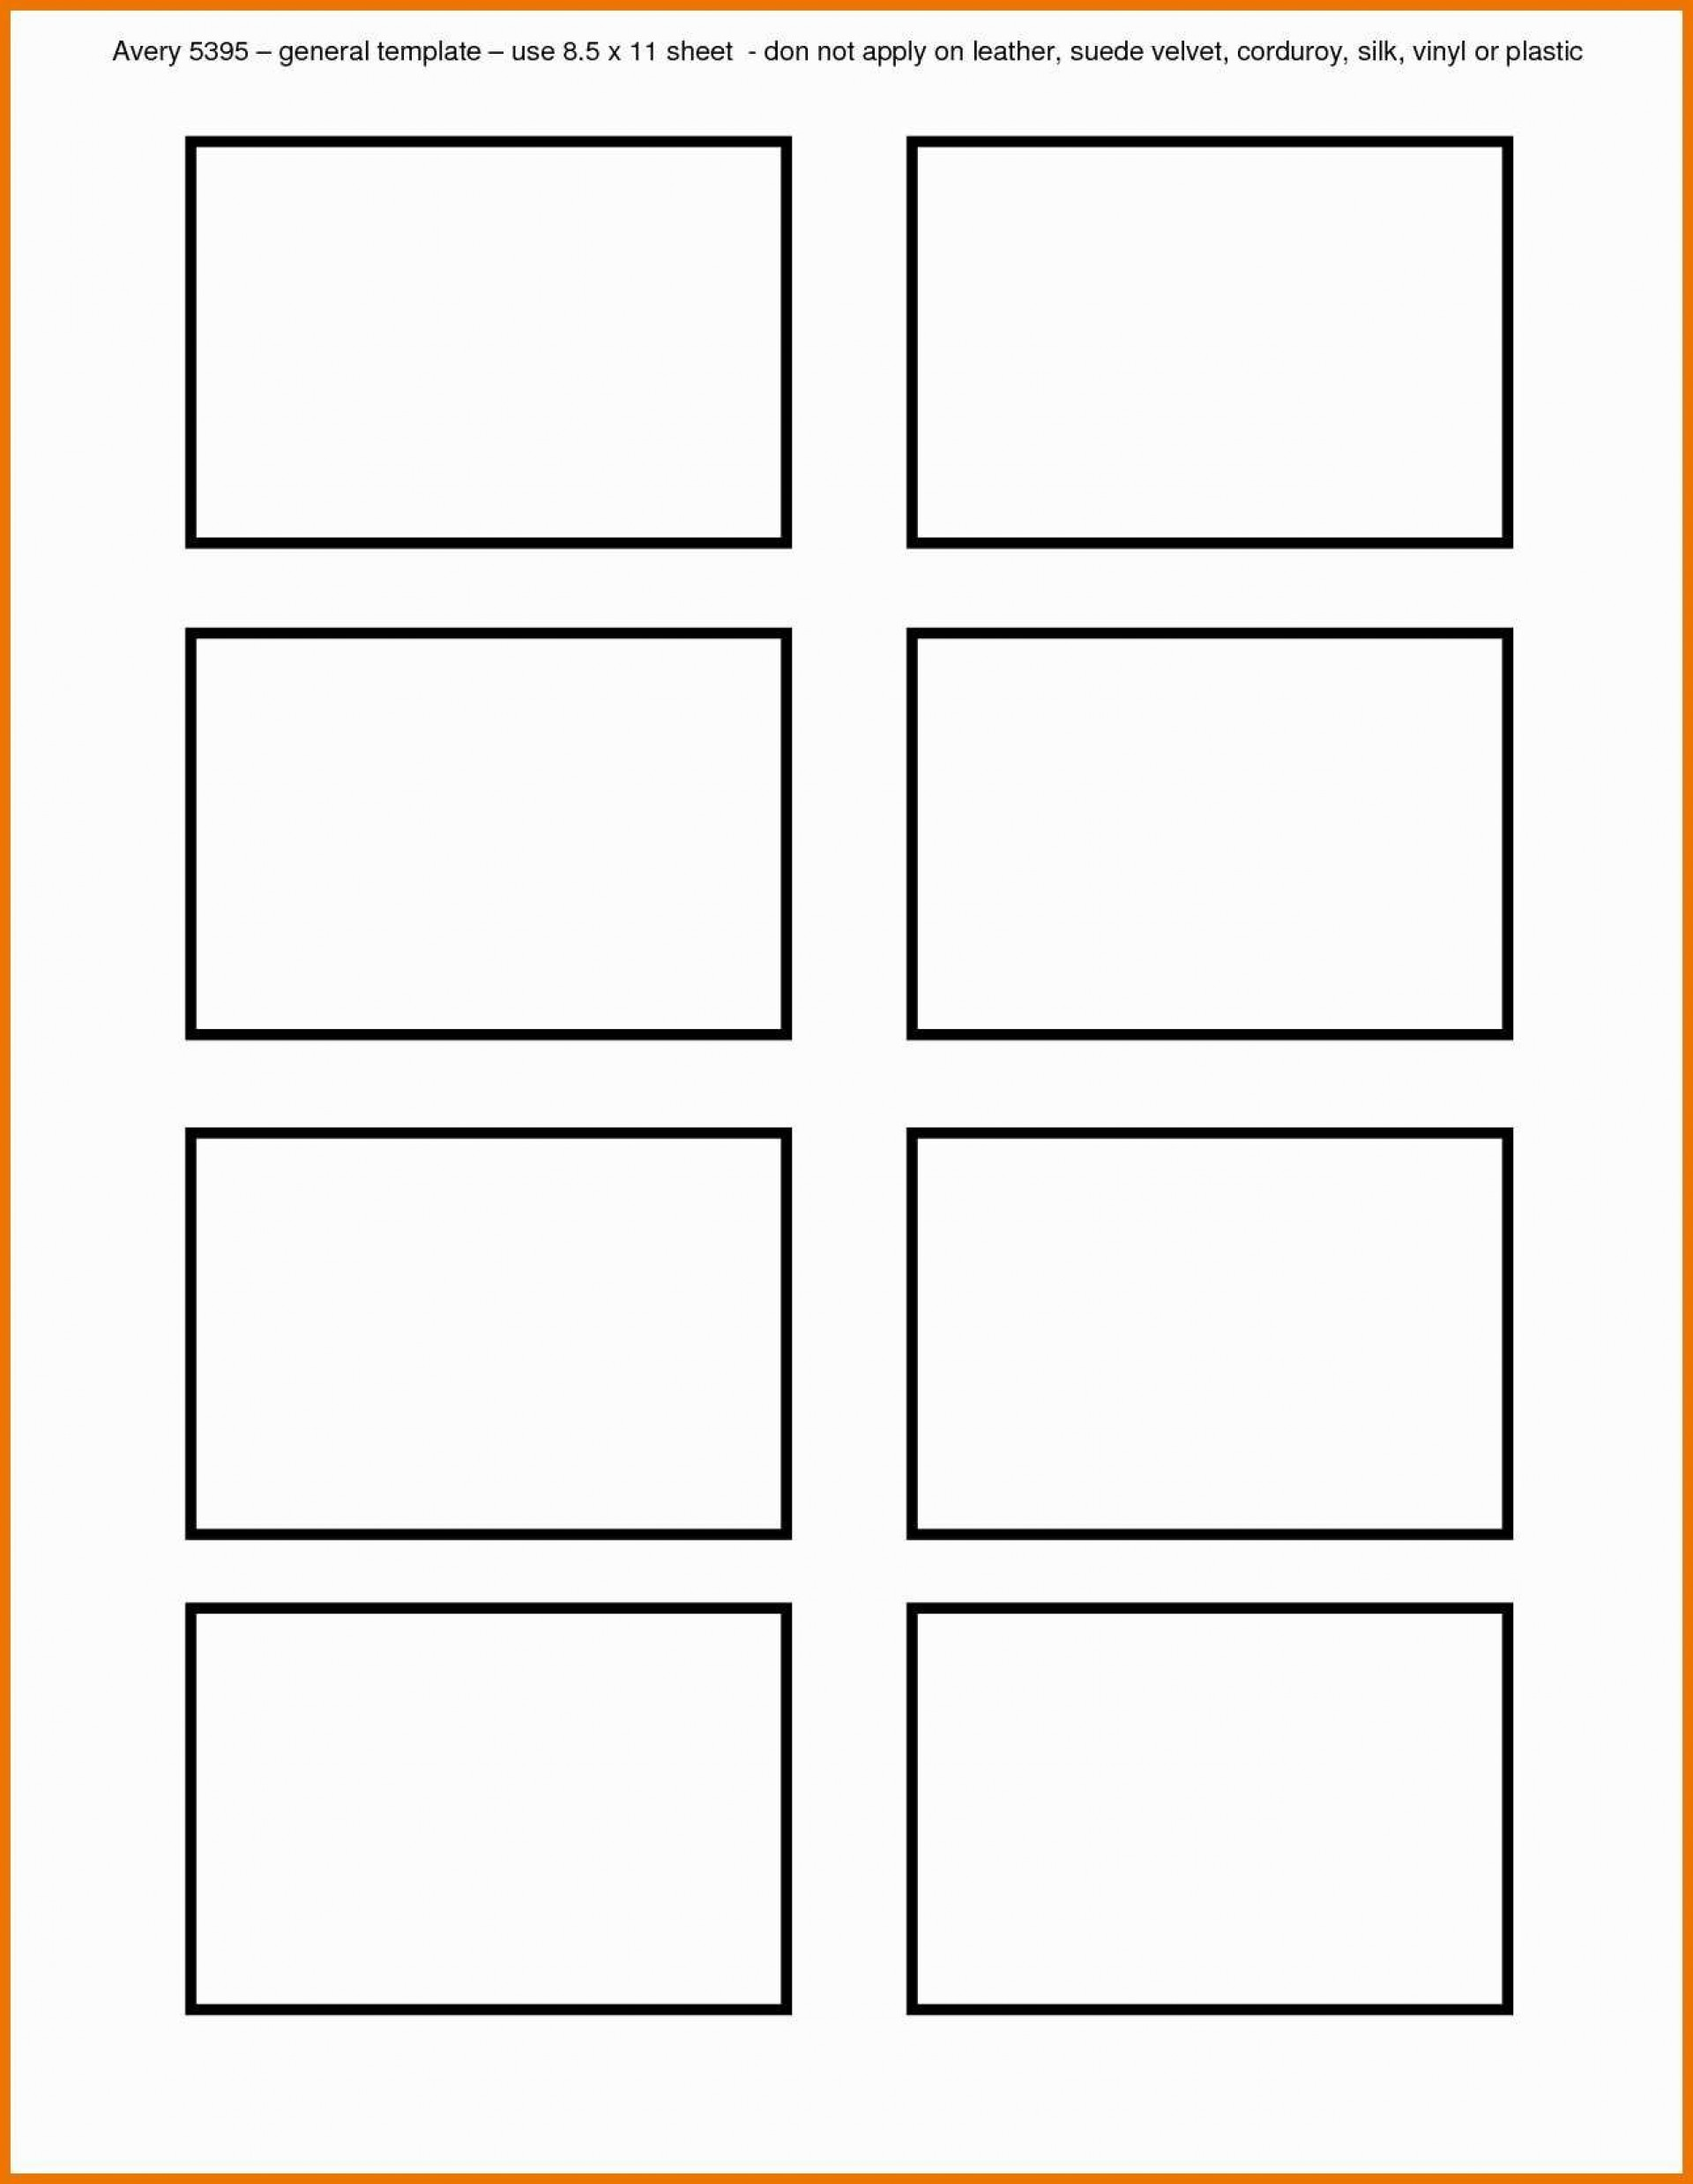 000 Unique Free Printable Card Template Word Concept  Blank Busines For1920